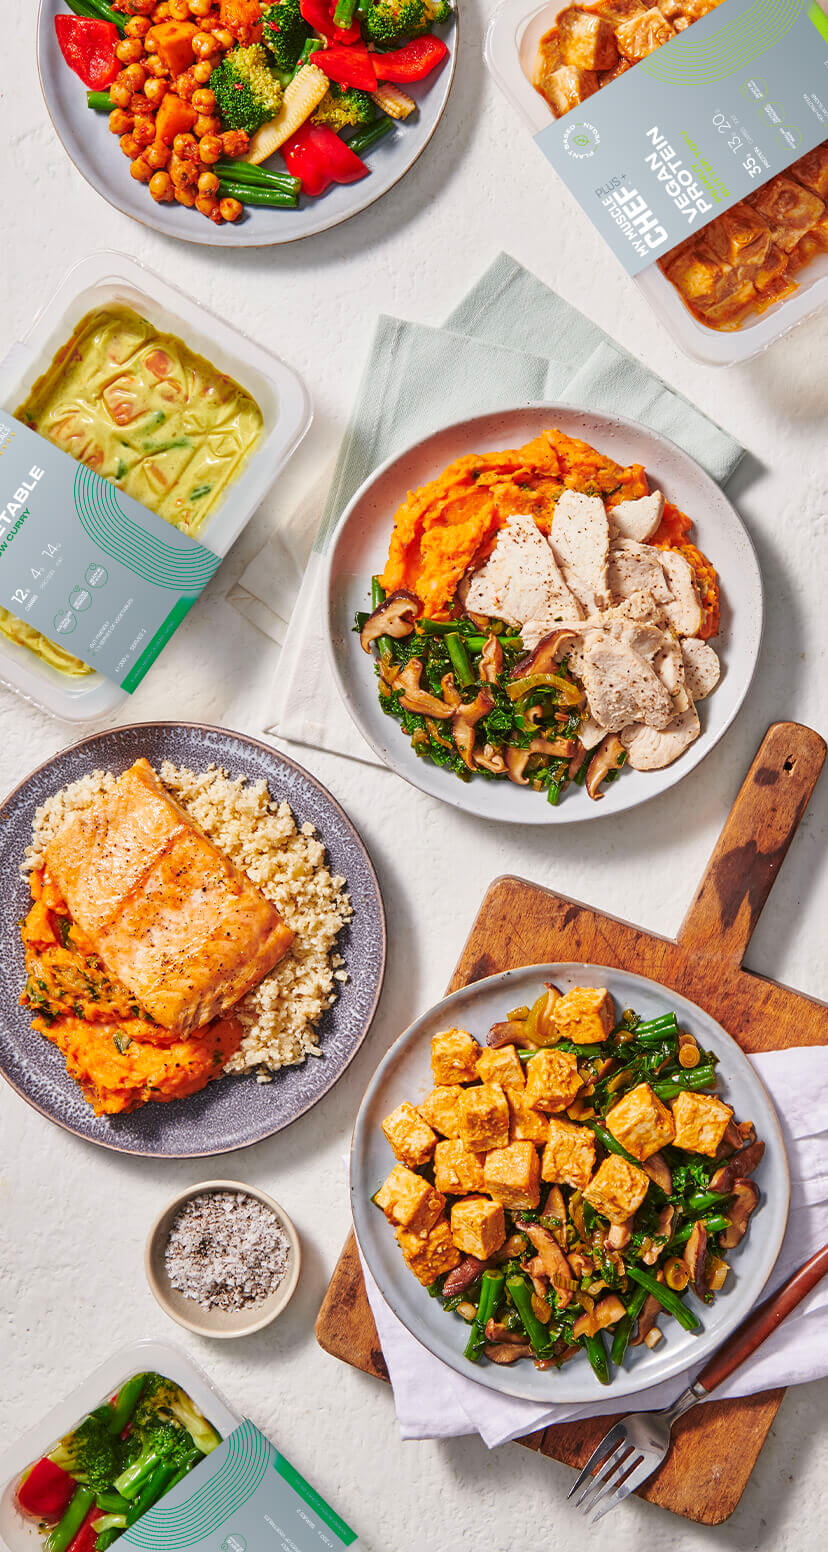 MYMC Plus+ | Ready Made Protein, Carbs & Vegetable Portions